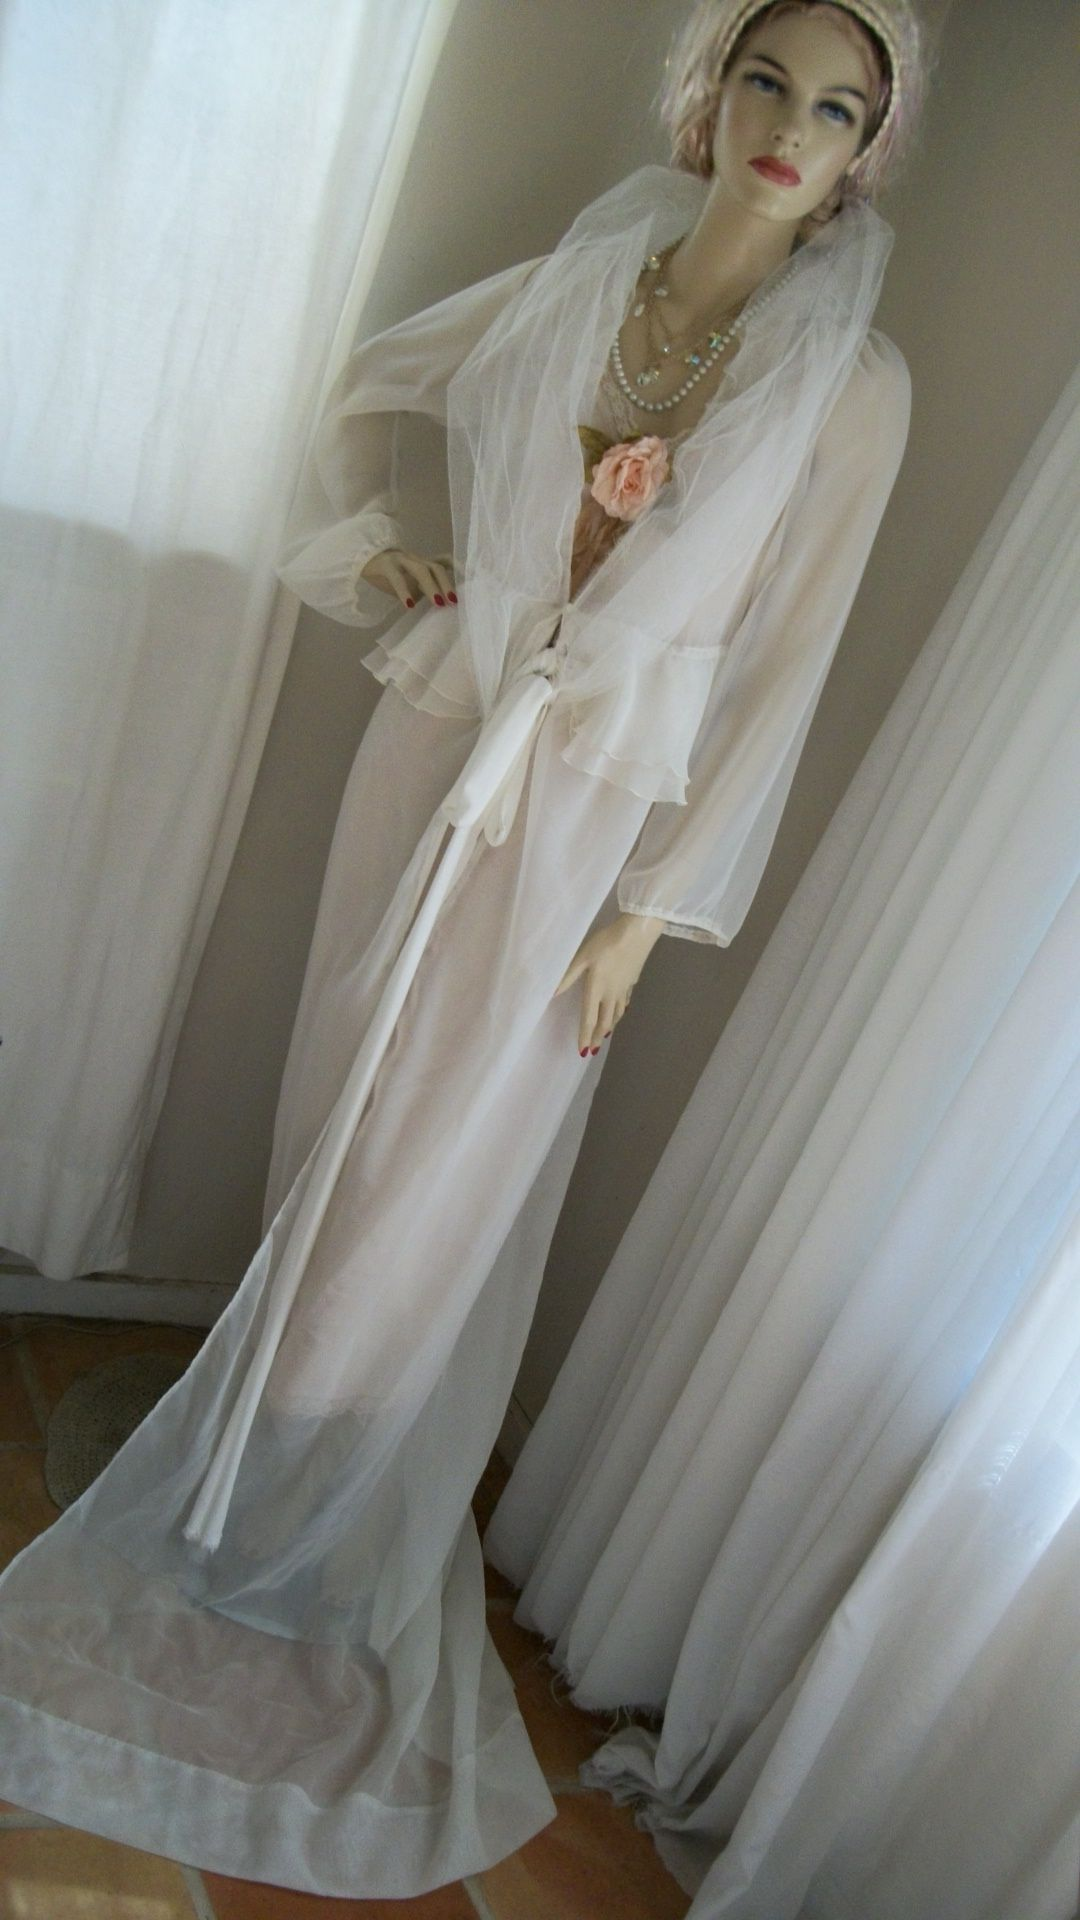 Original design by me.  One size fits most, one of a kind sheer white 1930s style dressing gown, house coat, wedding, glamour gown.  Listed for sale on my Etsy store:  Another Thyme Vintage  Sold